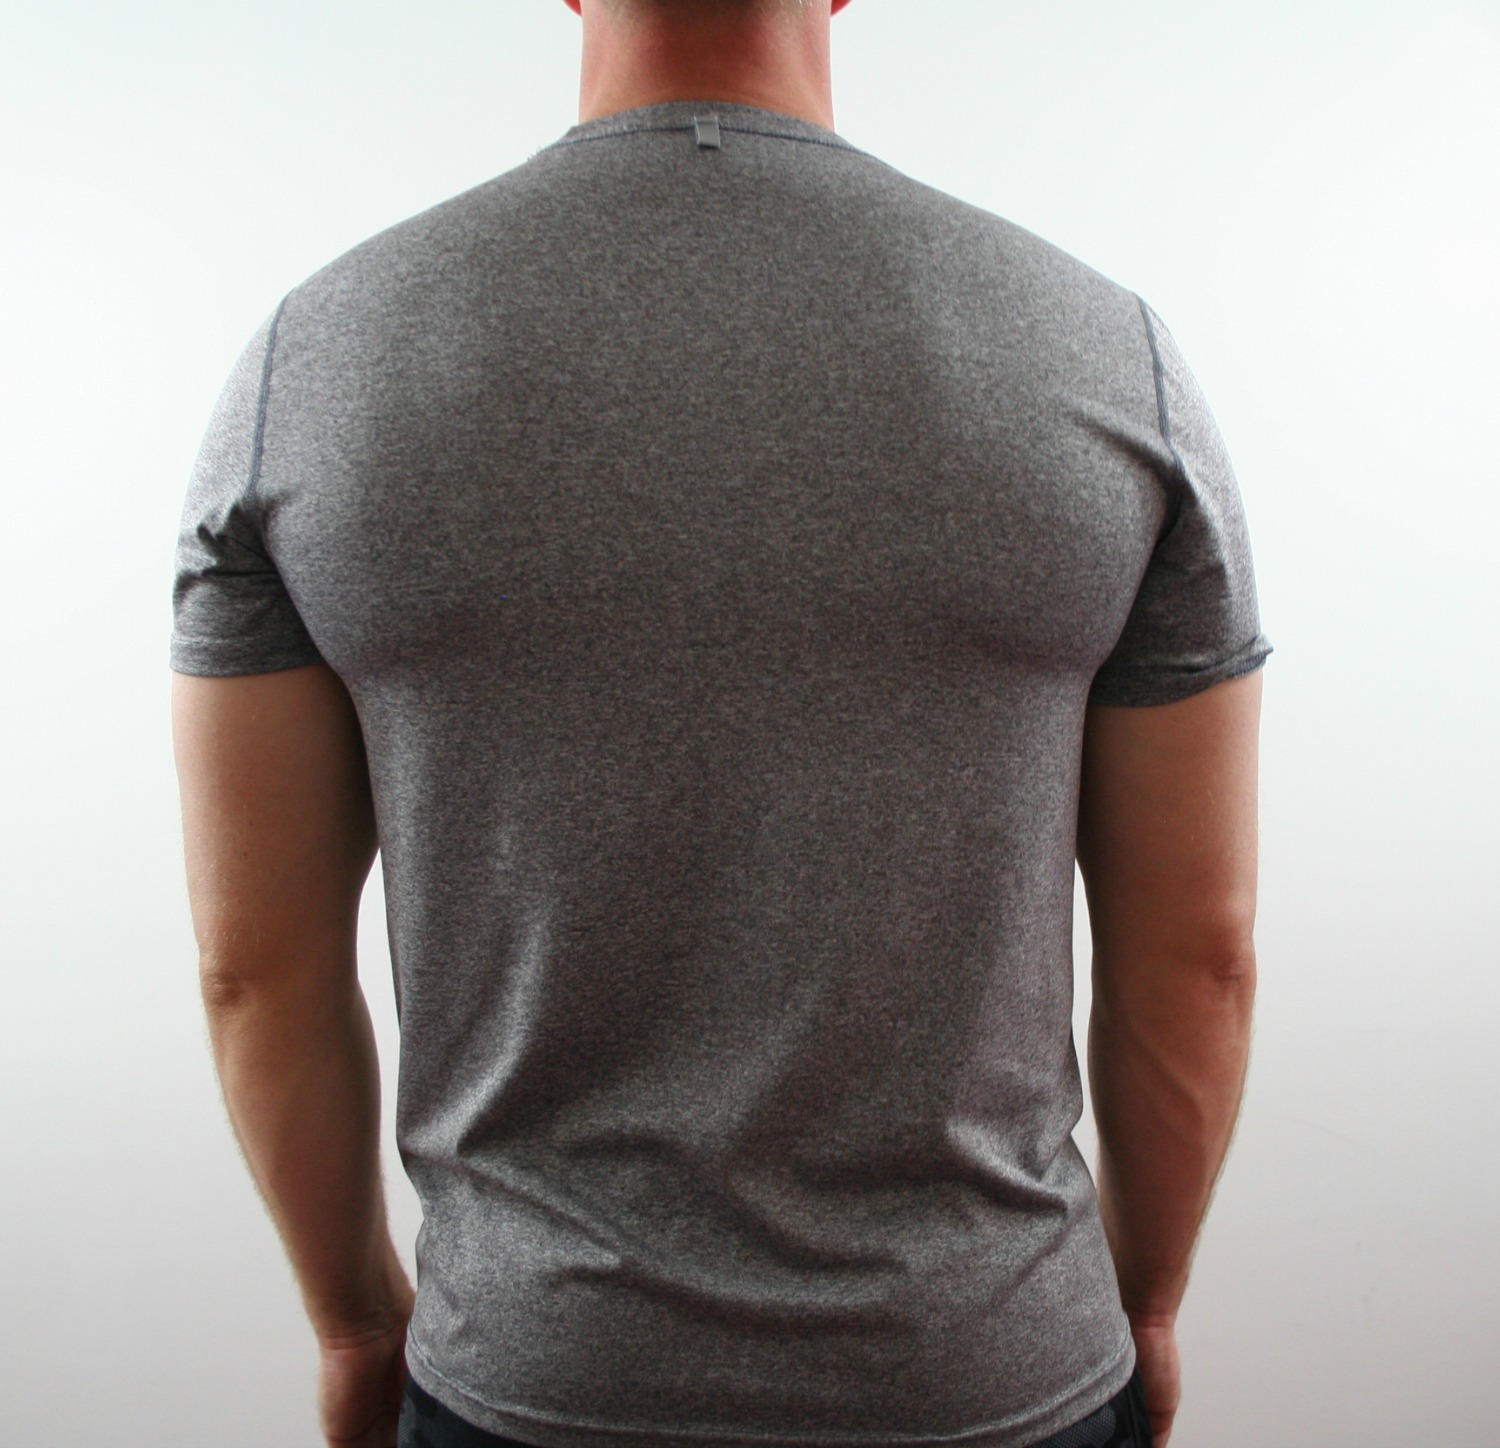 Sports Bras for Men: Champion Great Divide Review